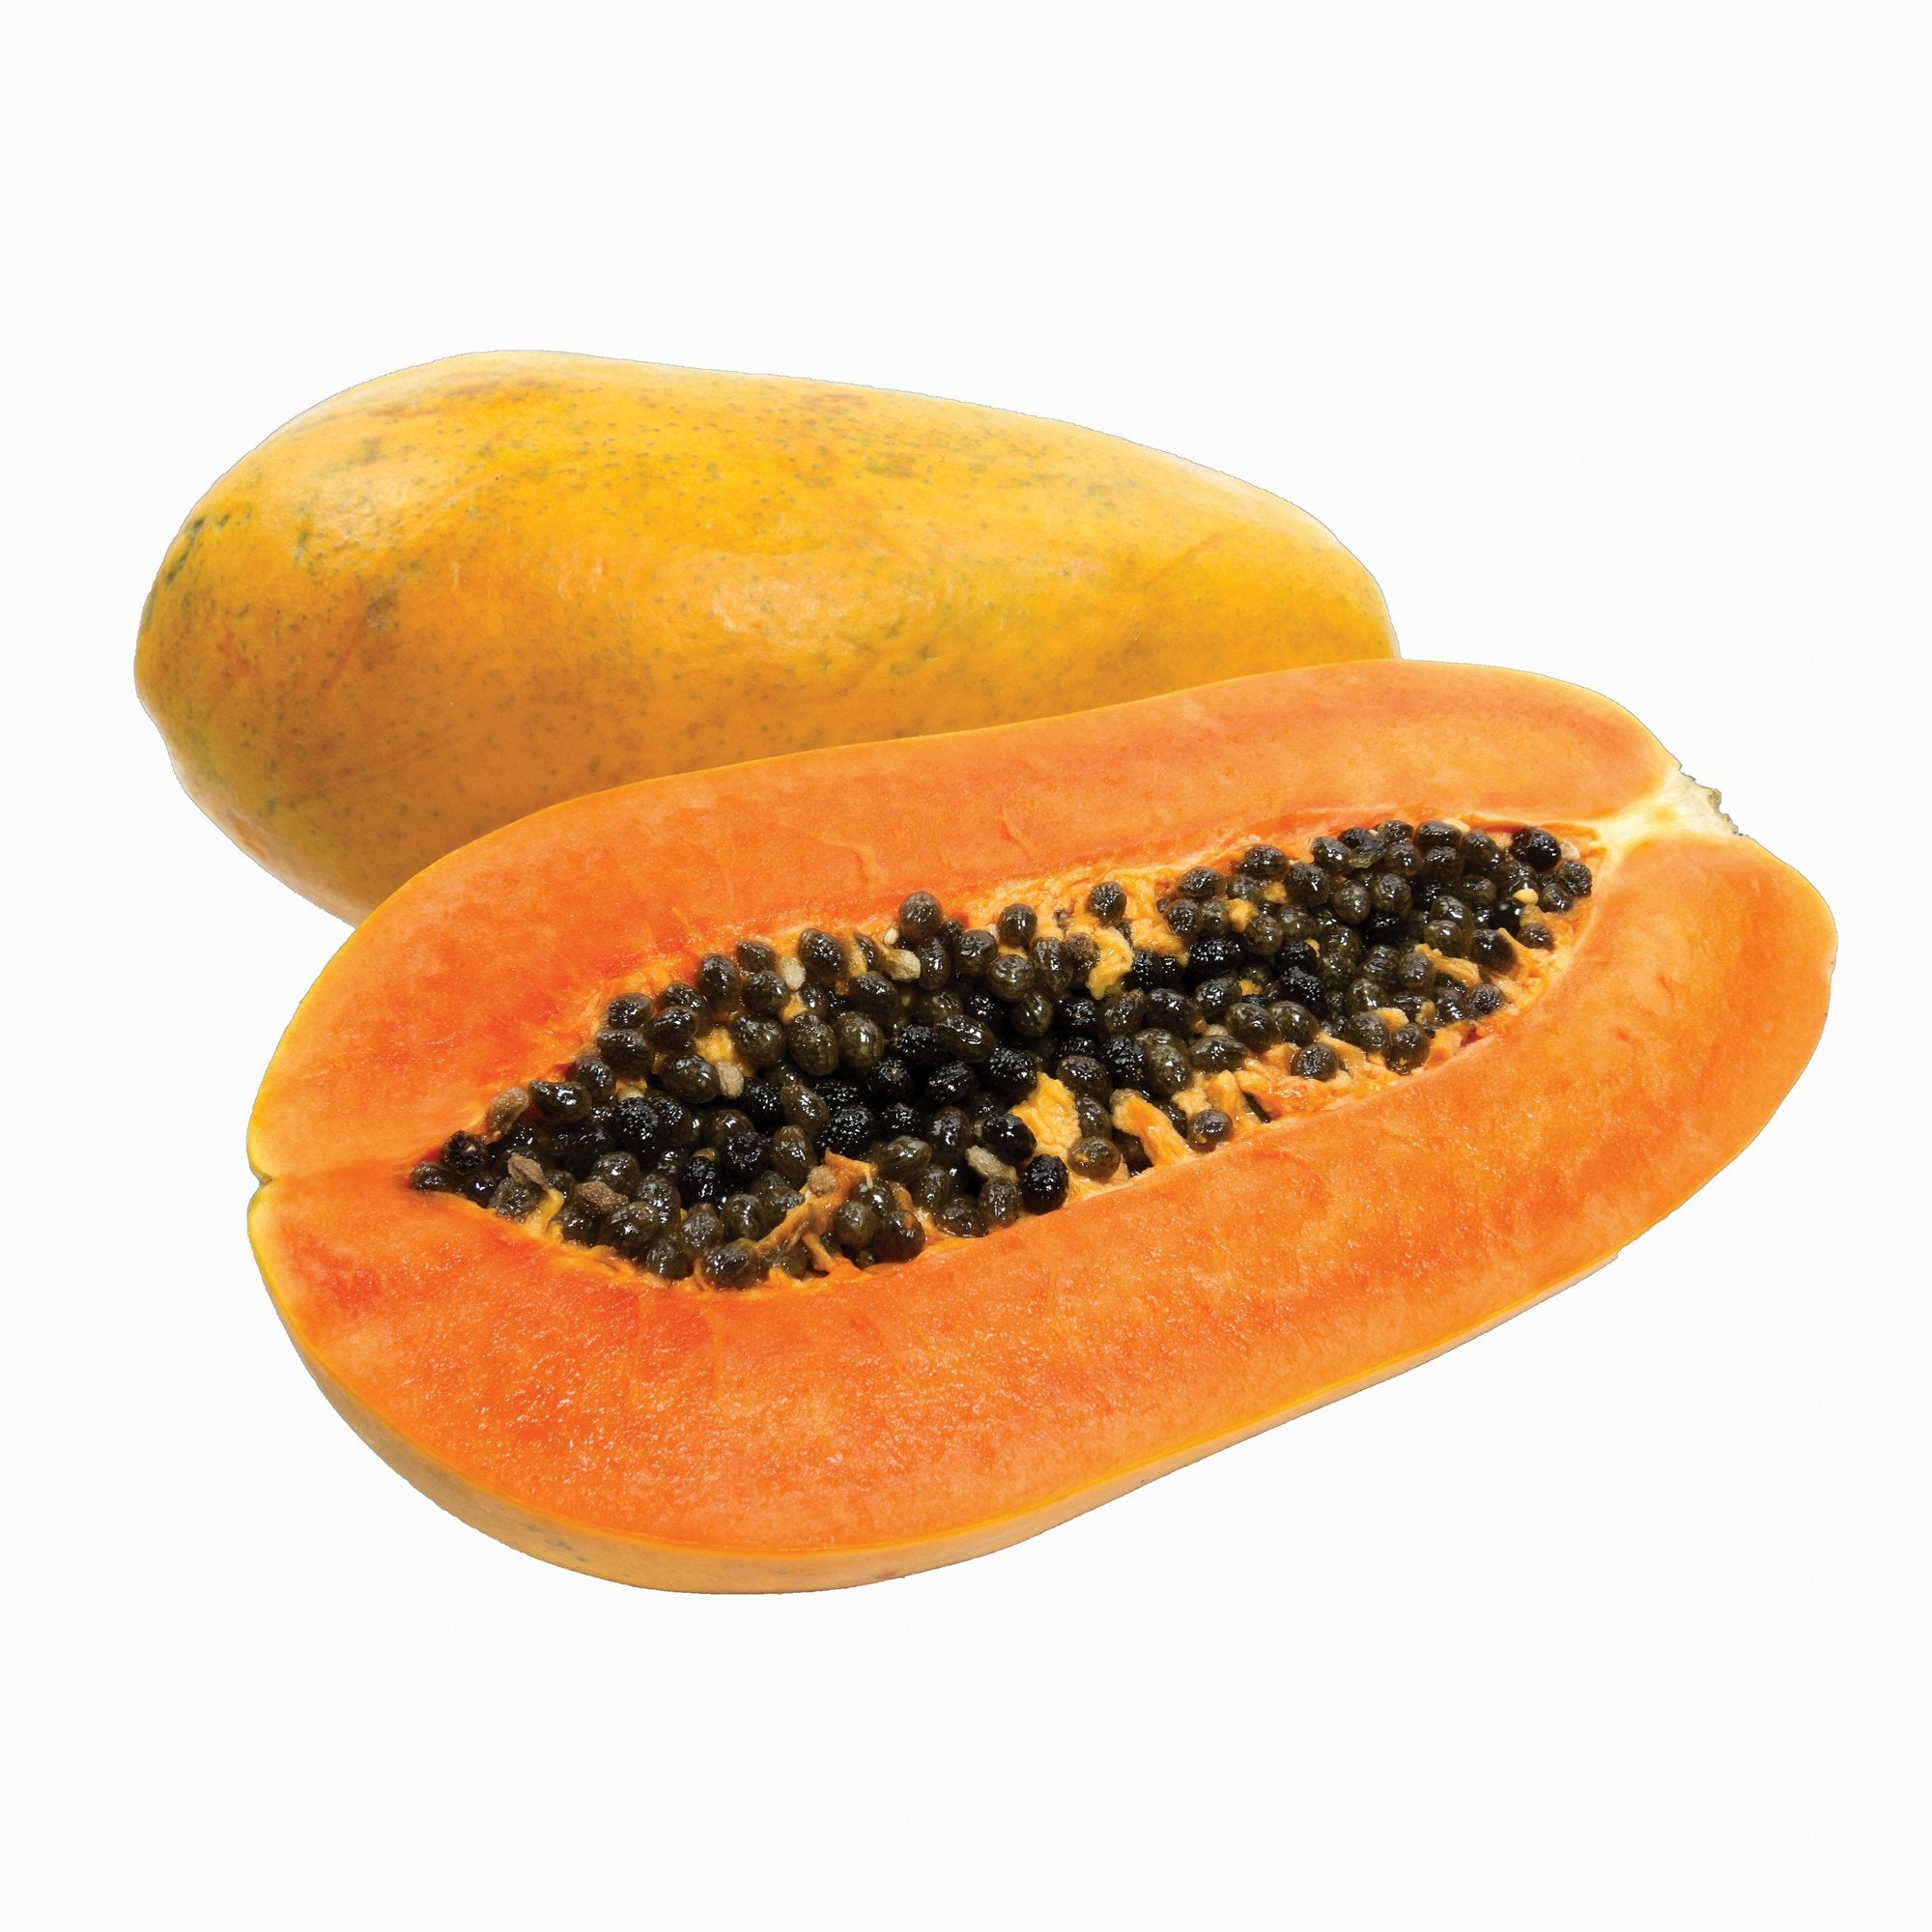 Paw Paw / Papaya - each